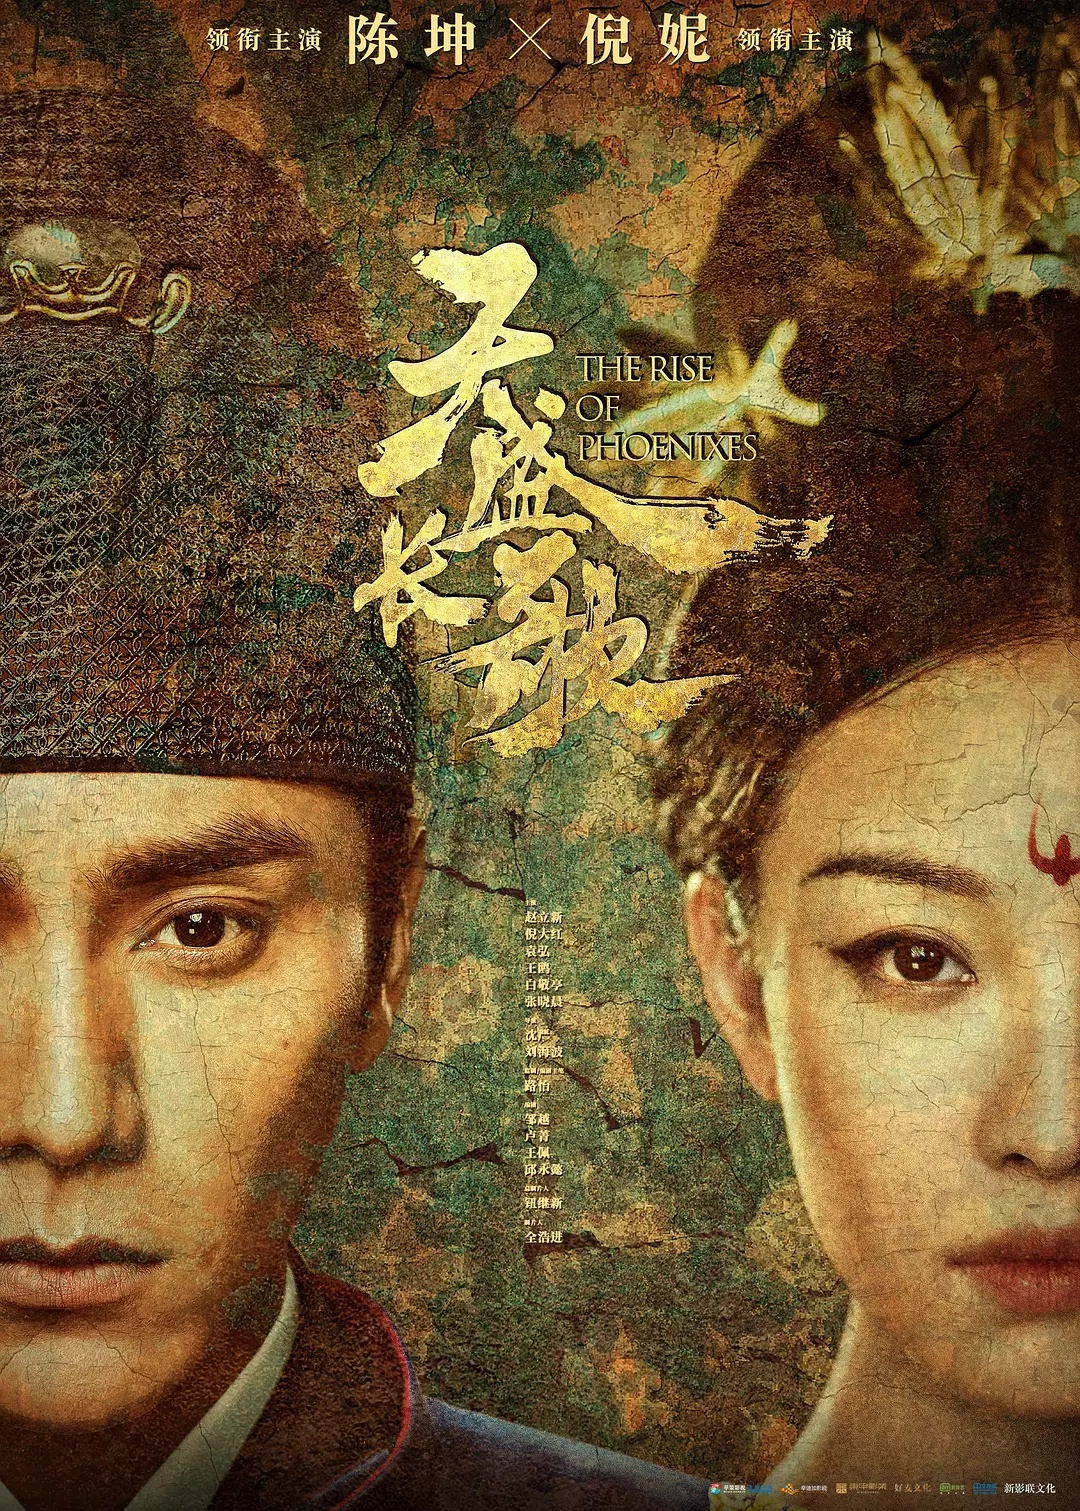 The Rise of Phoenixes (TV Series 2018) - IMDb